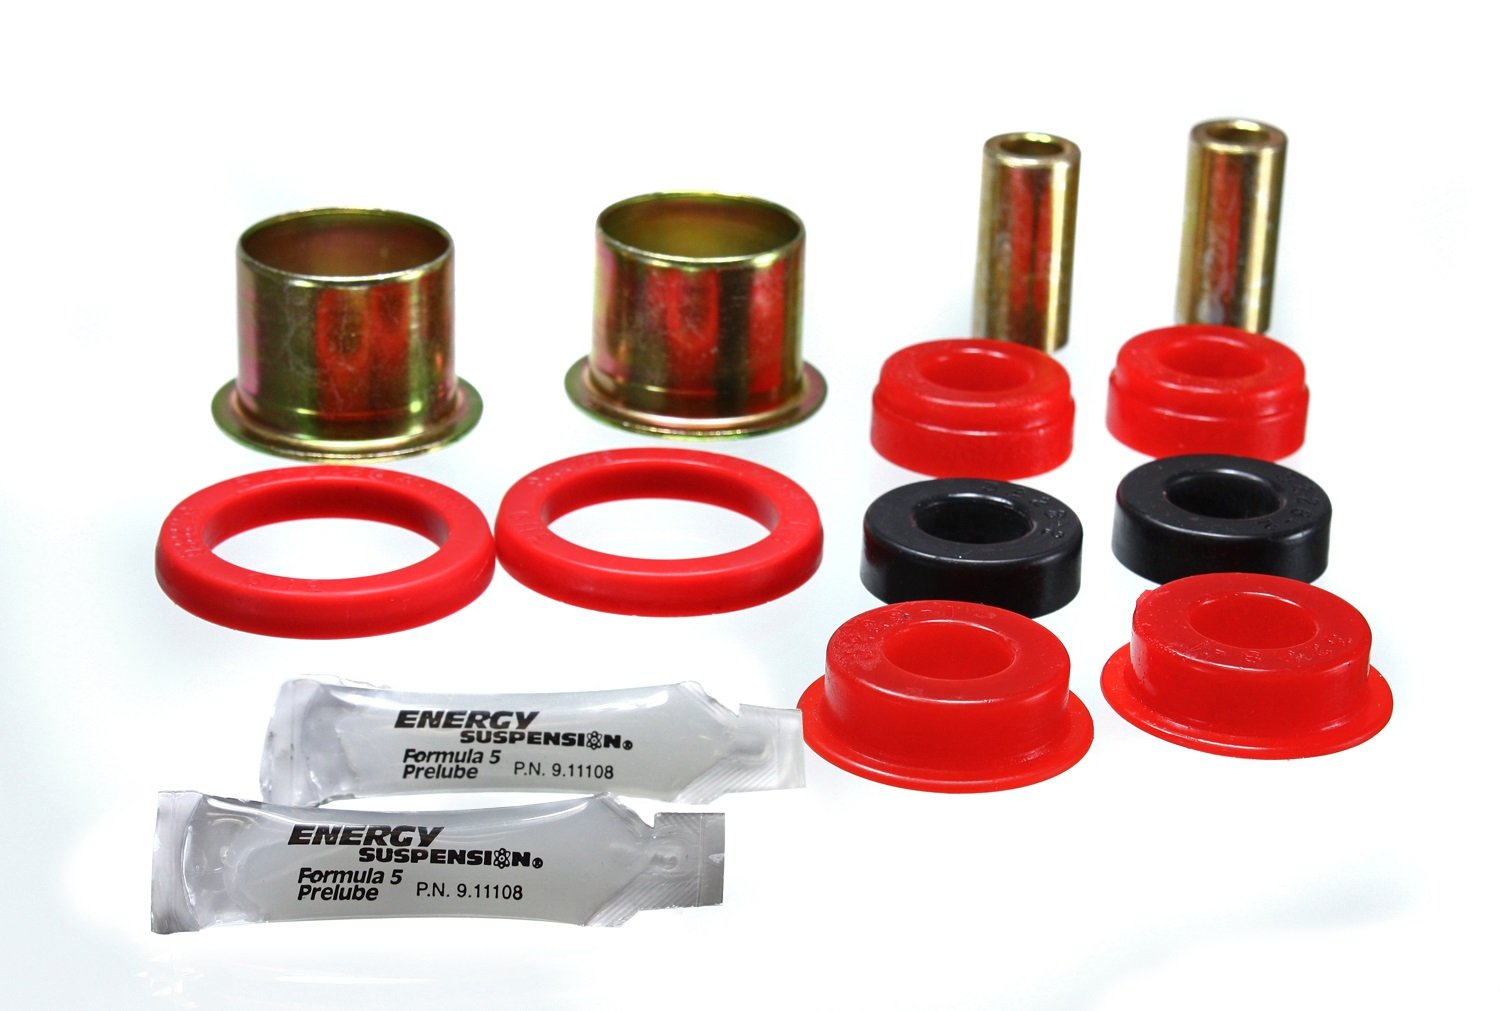 Energy Suspension 4.3133R Central Arm Bushings for Ford by Energy Suspension